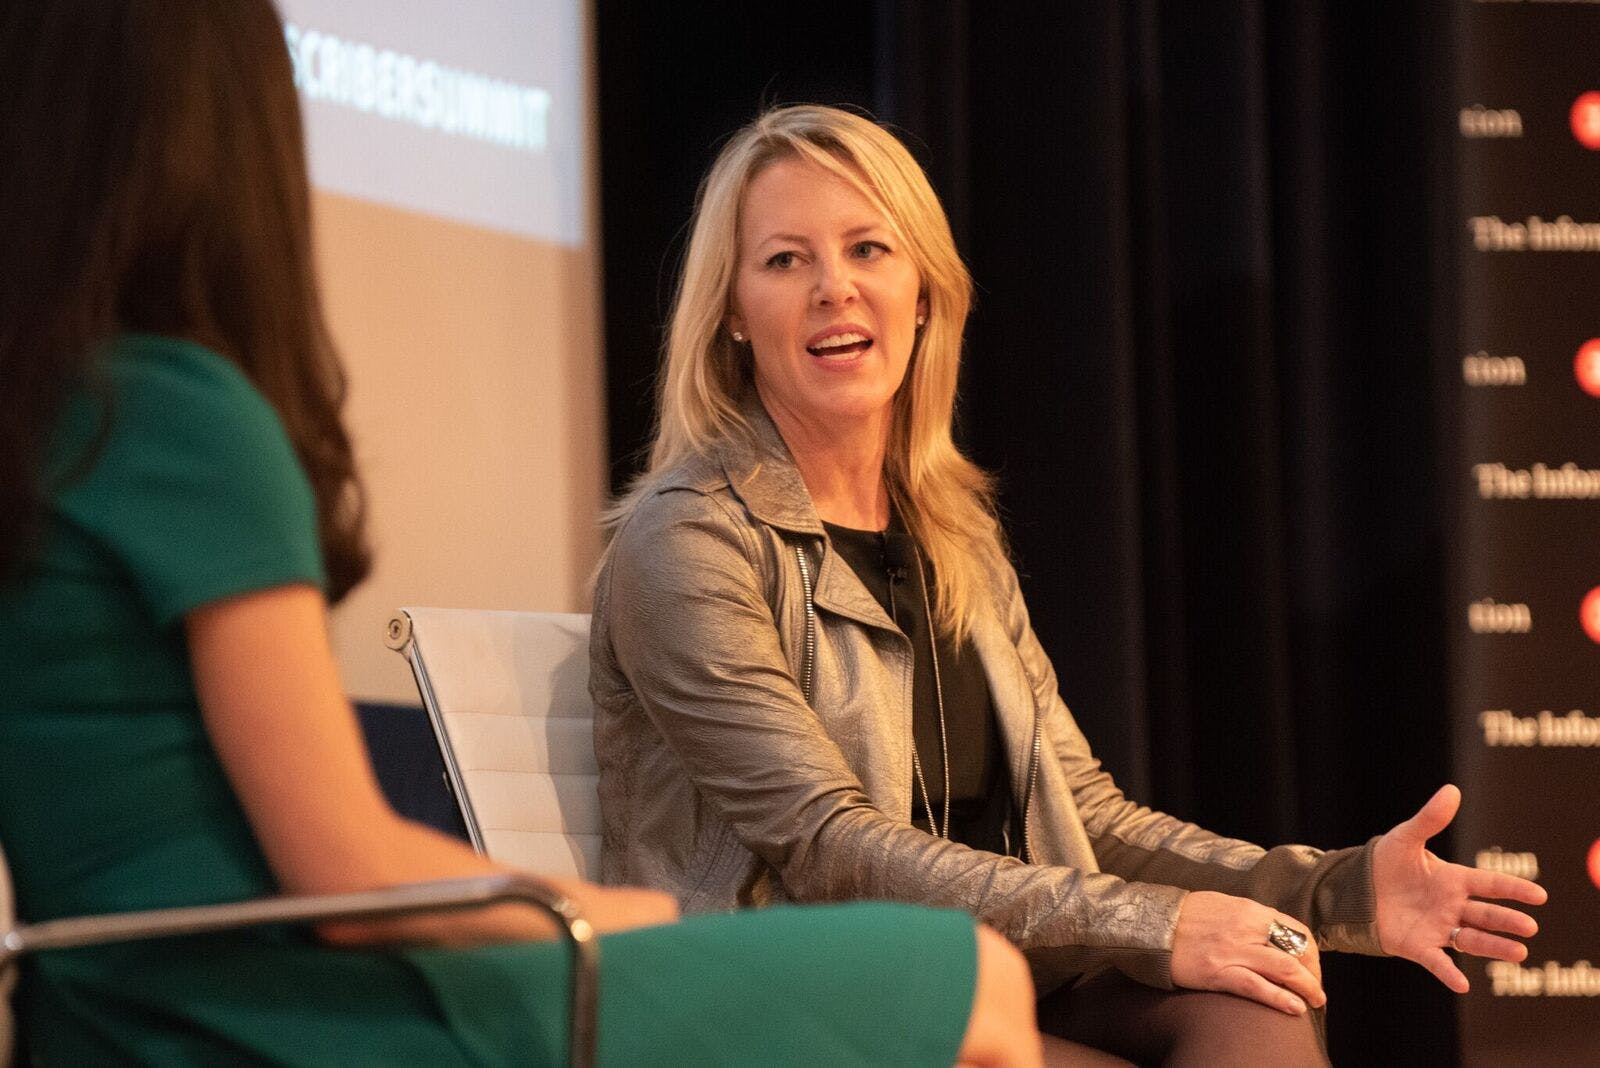 Andreessen Horowitz general partner Katie Haun, in conversation with The Information founder Jessica Lessin, at The Information Subscriber Summit in San Francisco.